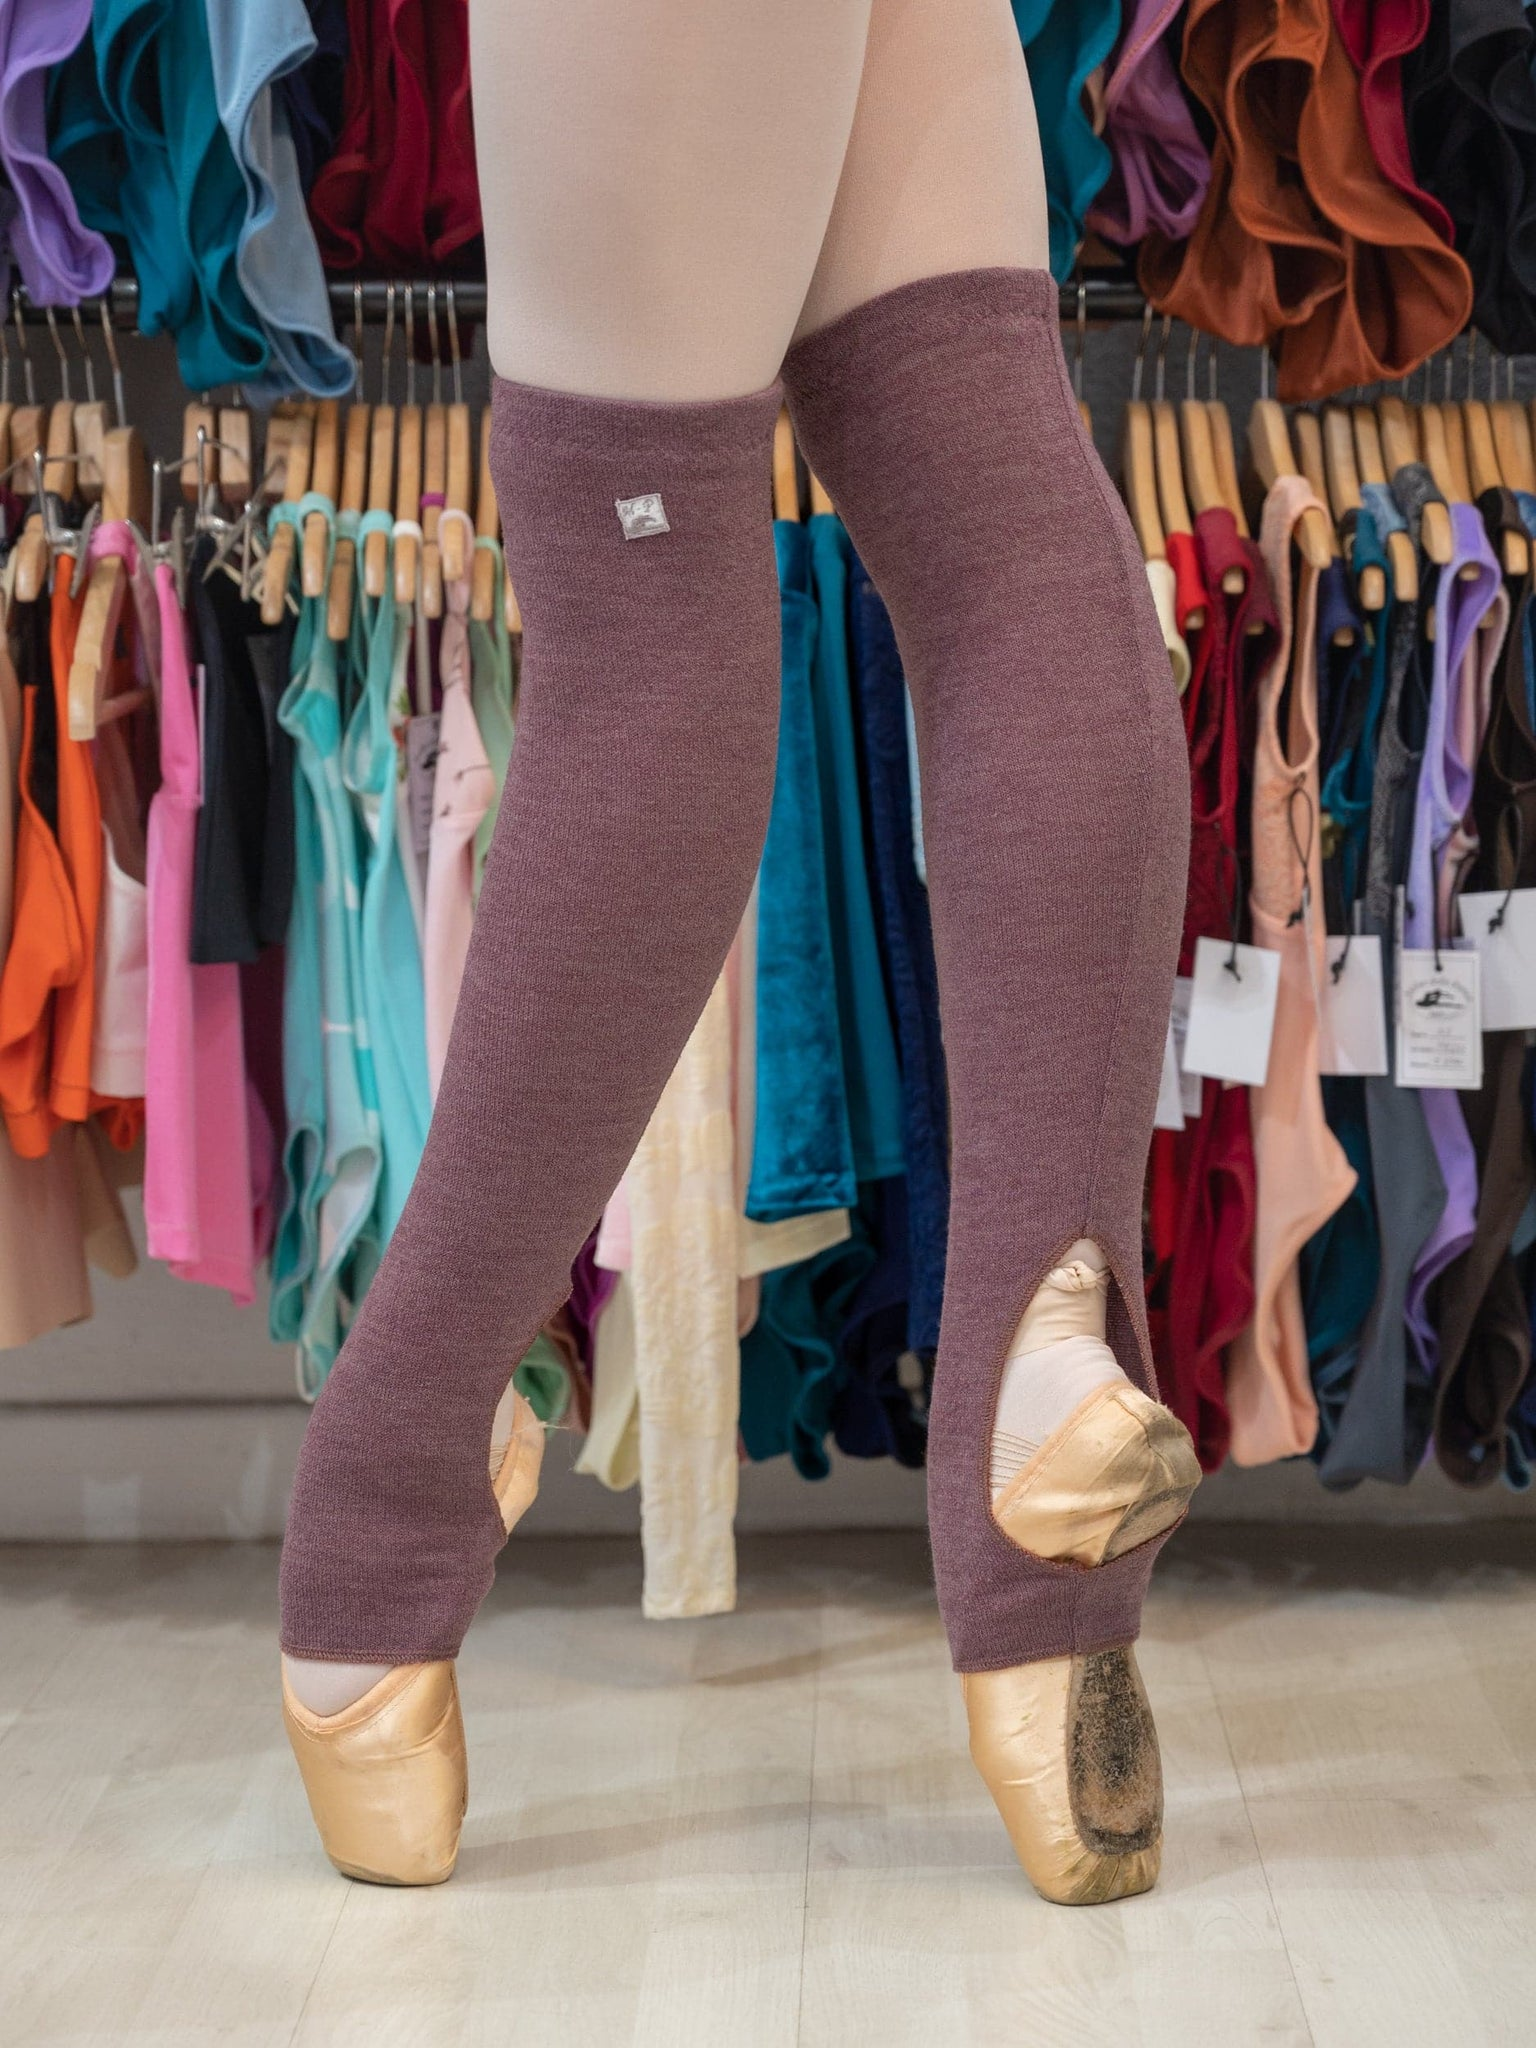 Berry Ballet Short Leg Warmers for Women and Men - Ballet Warm-up Clothes by Atelier della Danza MP